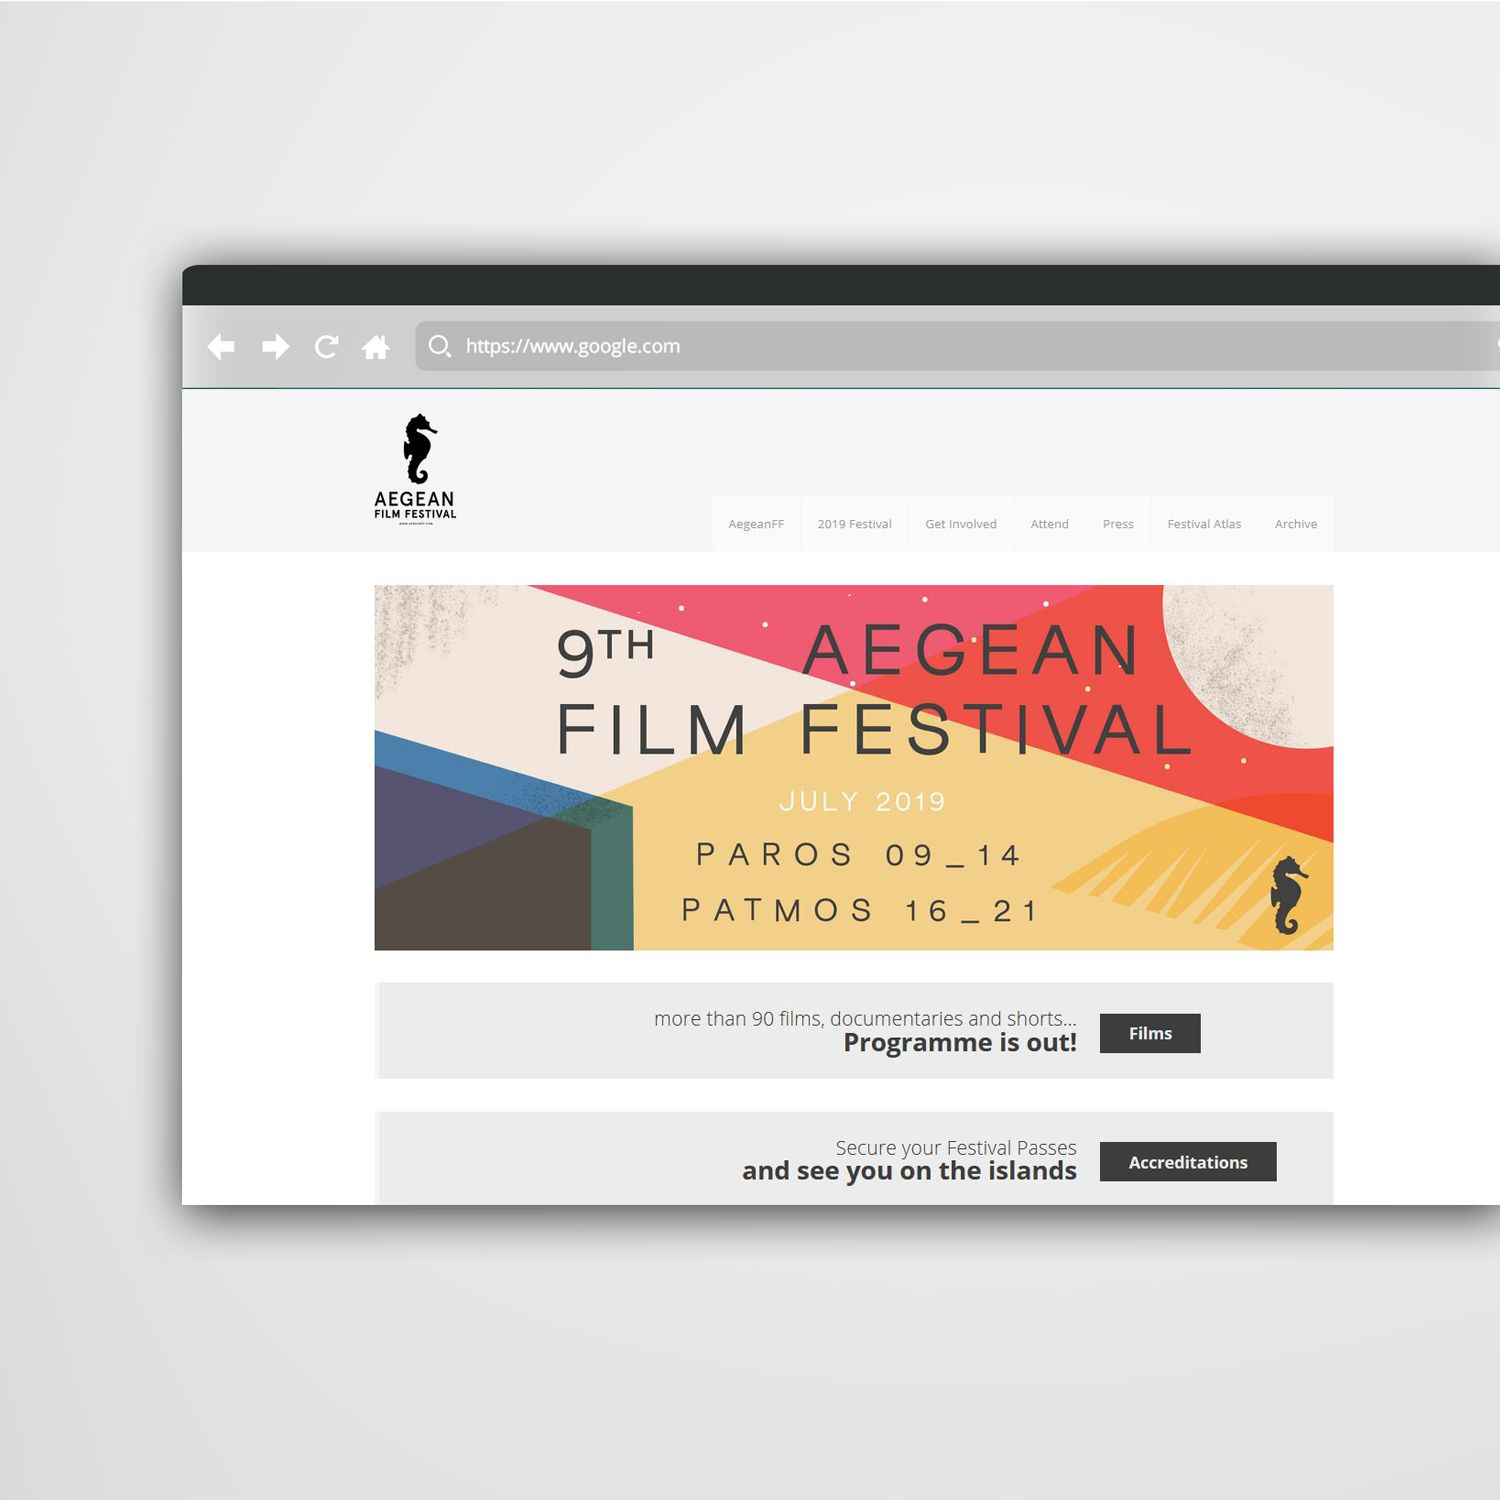 Aegeanff Redesign And Support Design Agency Creative